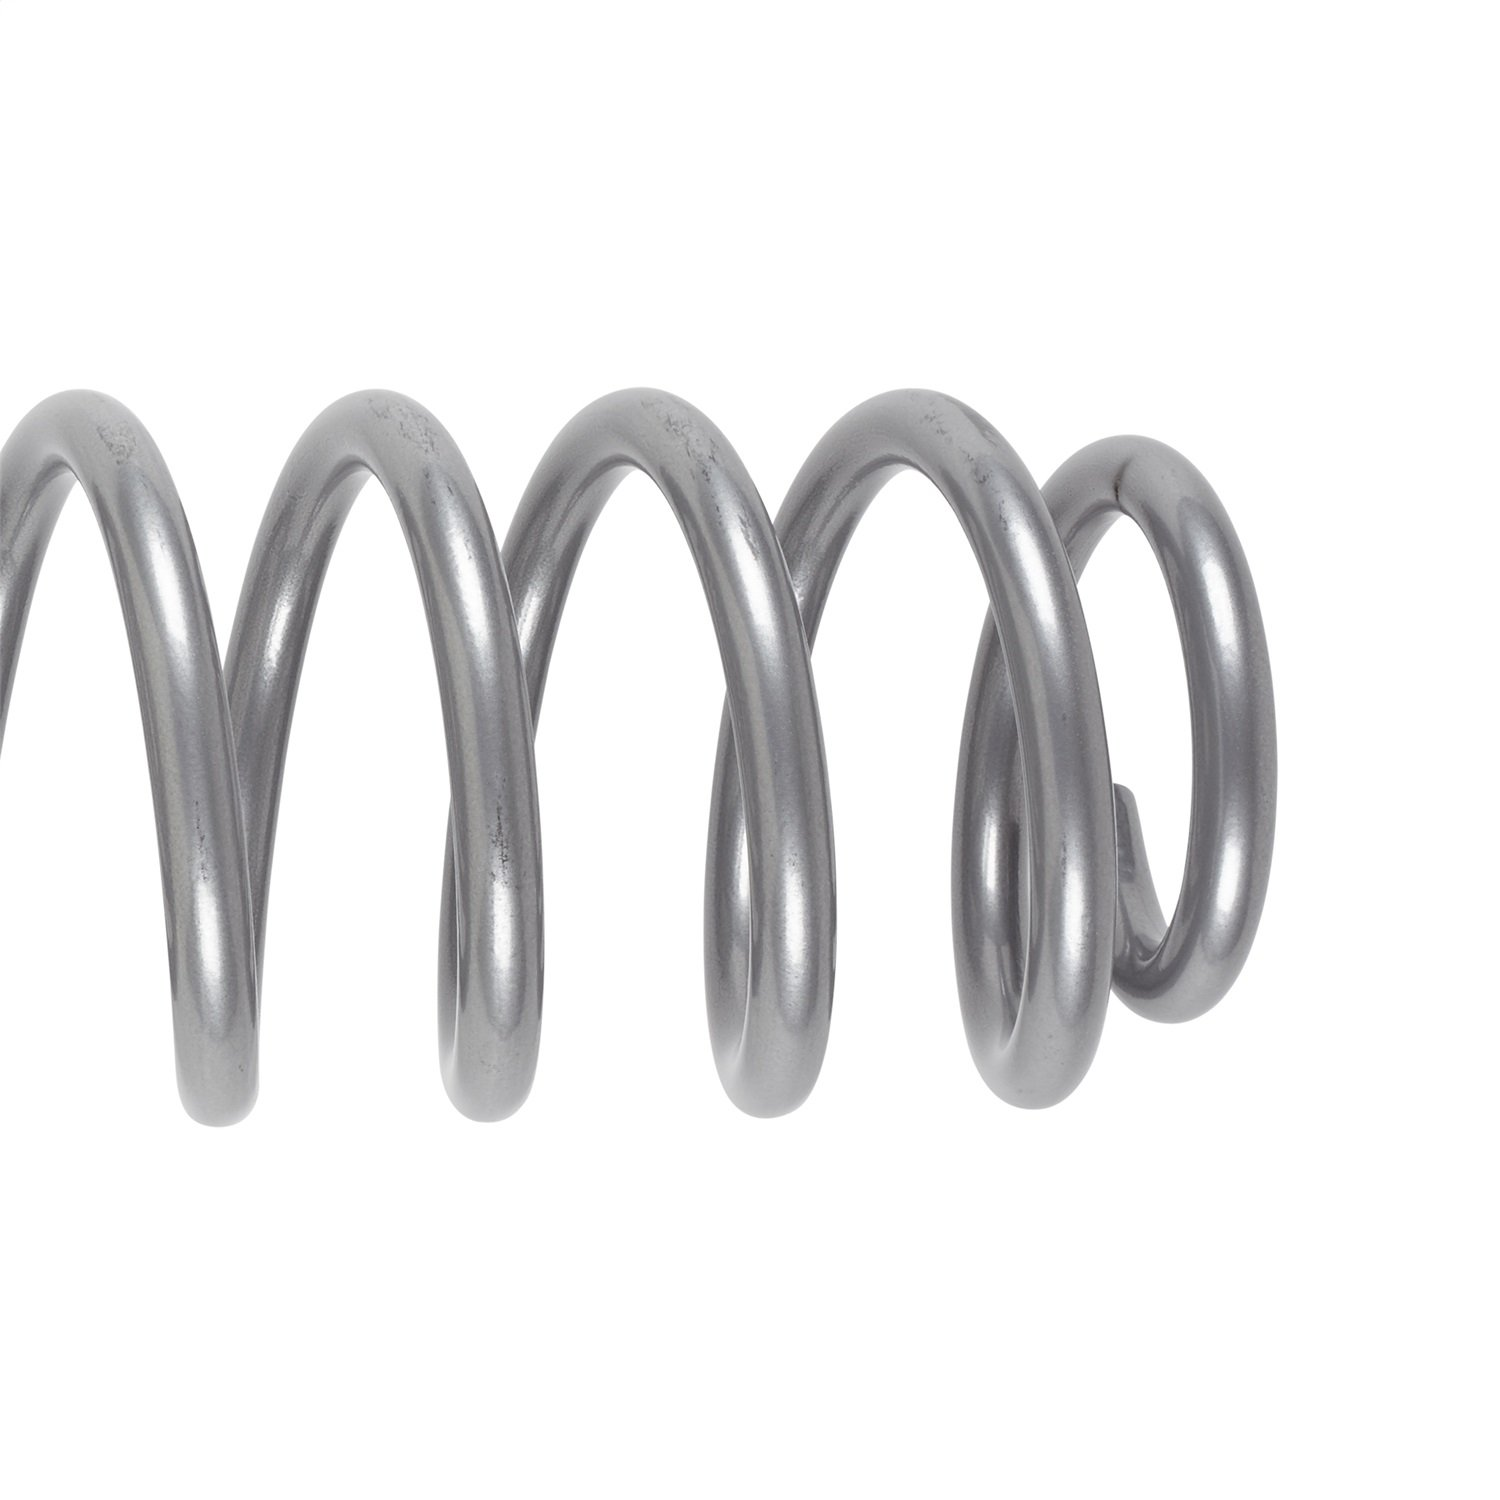 Rubicon Express RE1345 5.5' Coil Spring for Jeep XJ